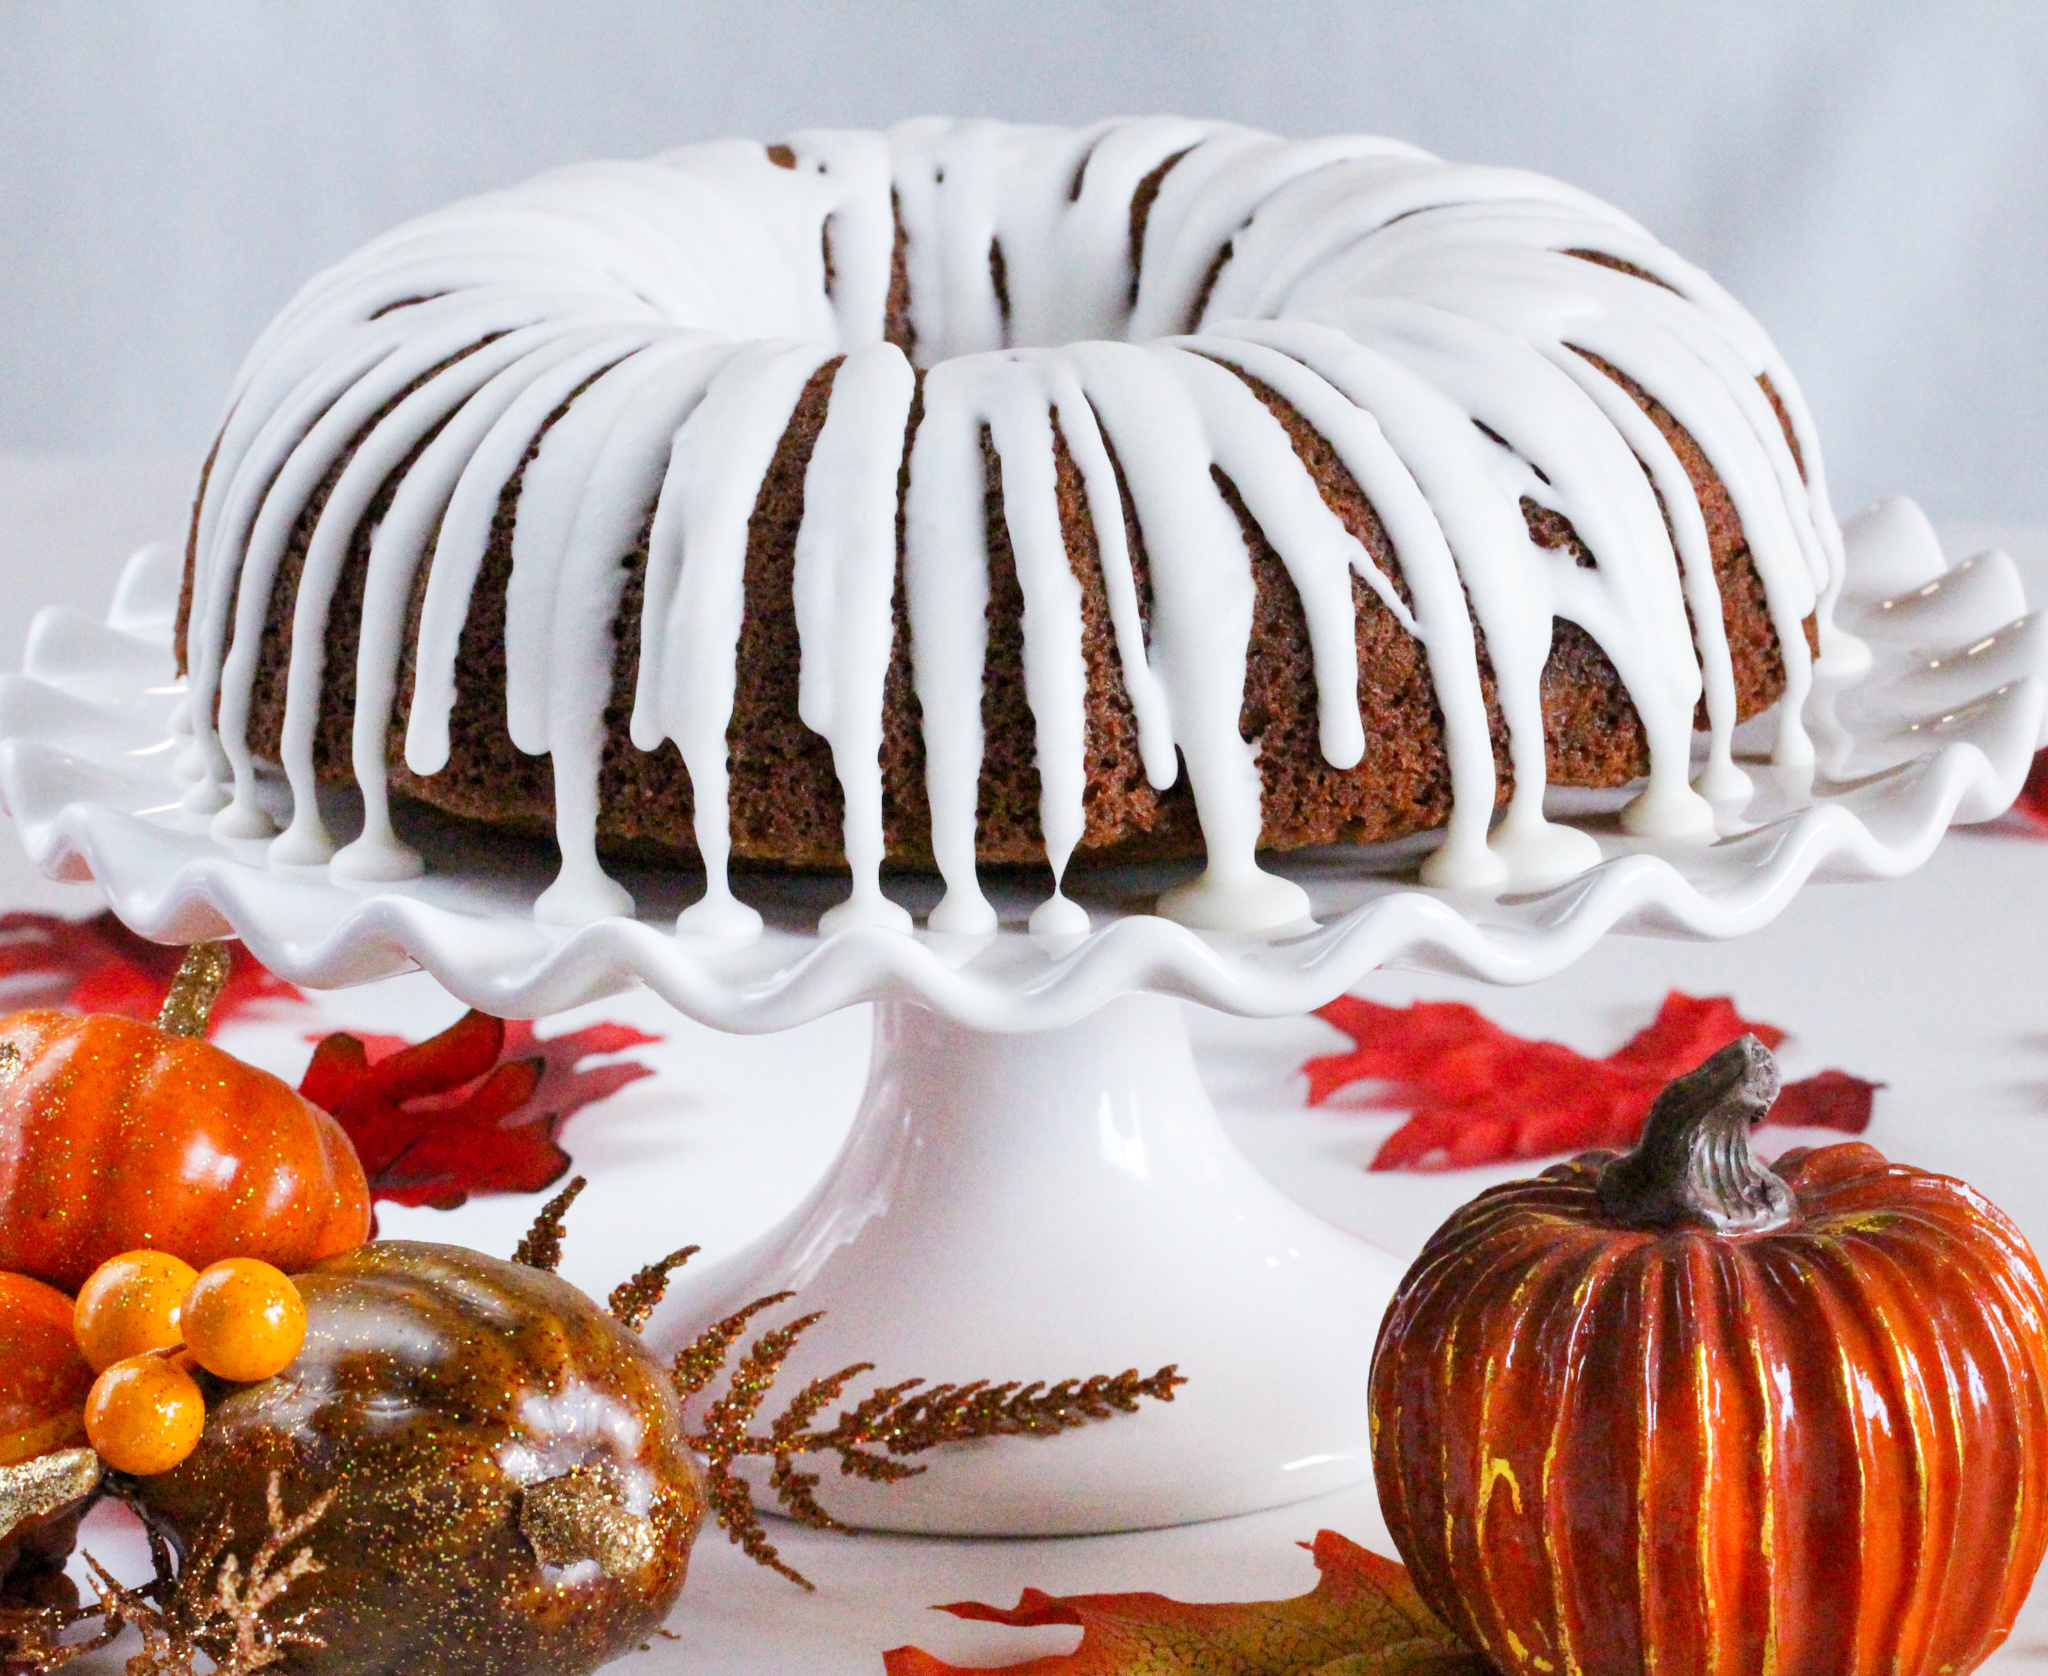 Six spices combine to infuse Chai Spice Cake with delicious flavor. With a generous drizzle of Cream Cheese Glaze, this showstopper will wow your guests! Recipe shared with permission granted by Jenny Kales, author of CALLIE'S KITCHEN MYSTERIES COOKBOOK.